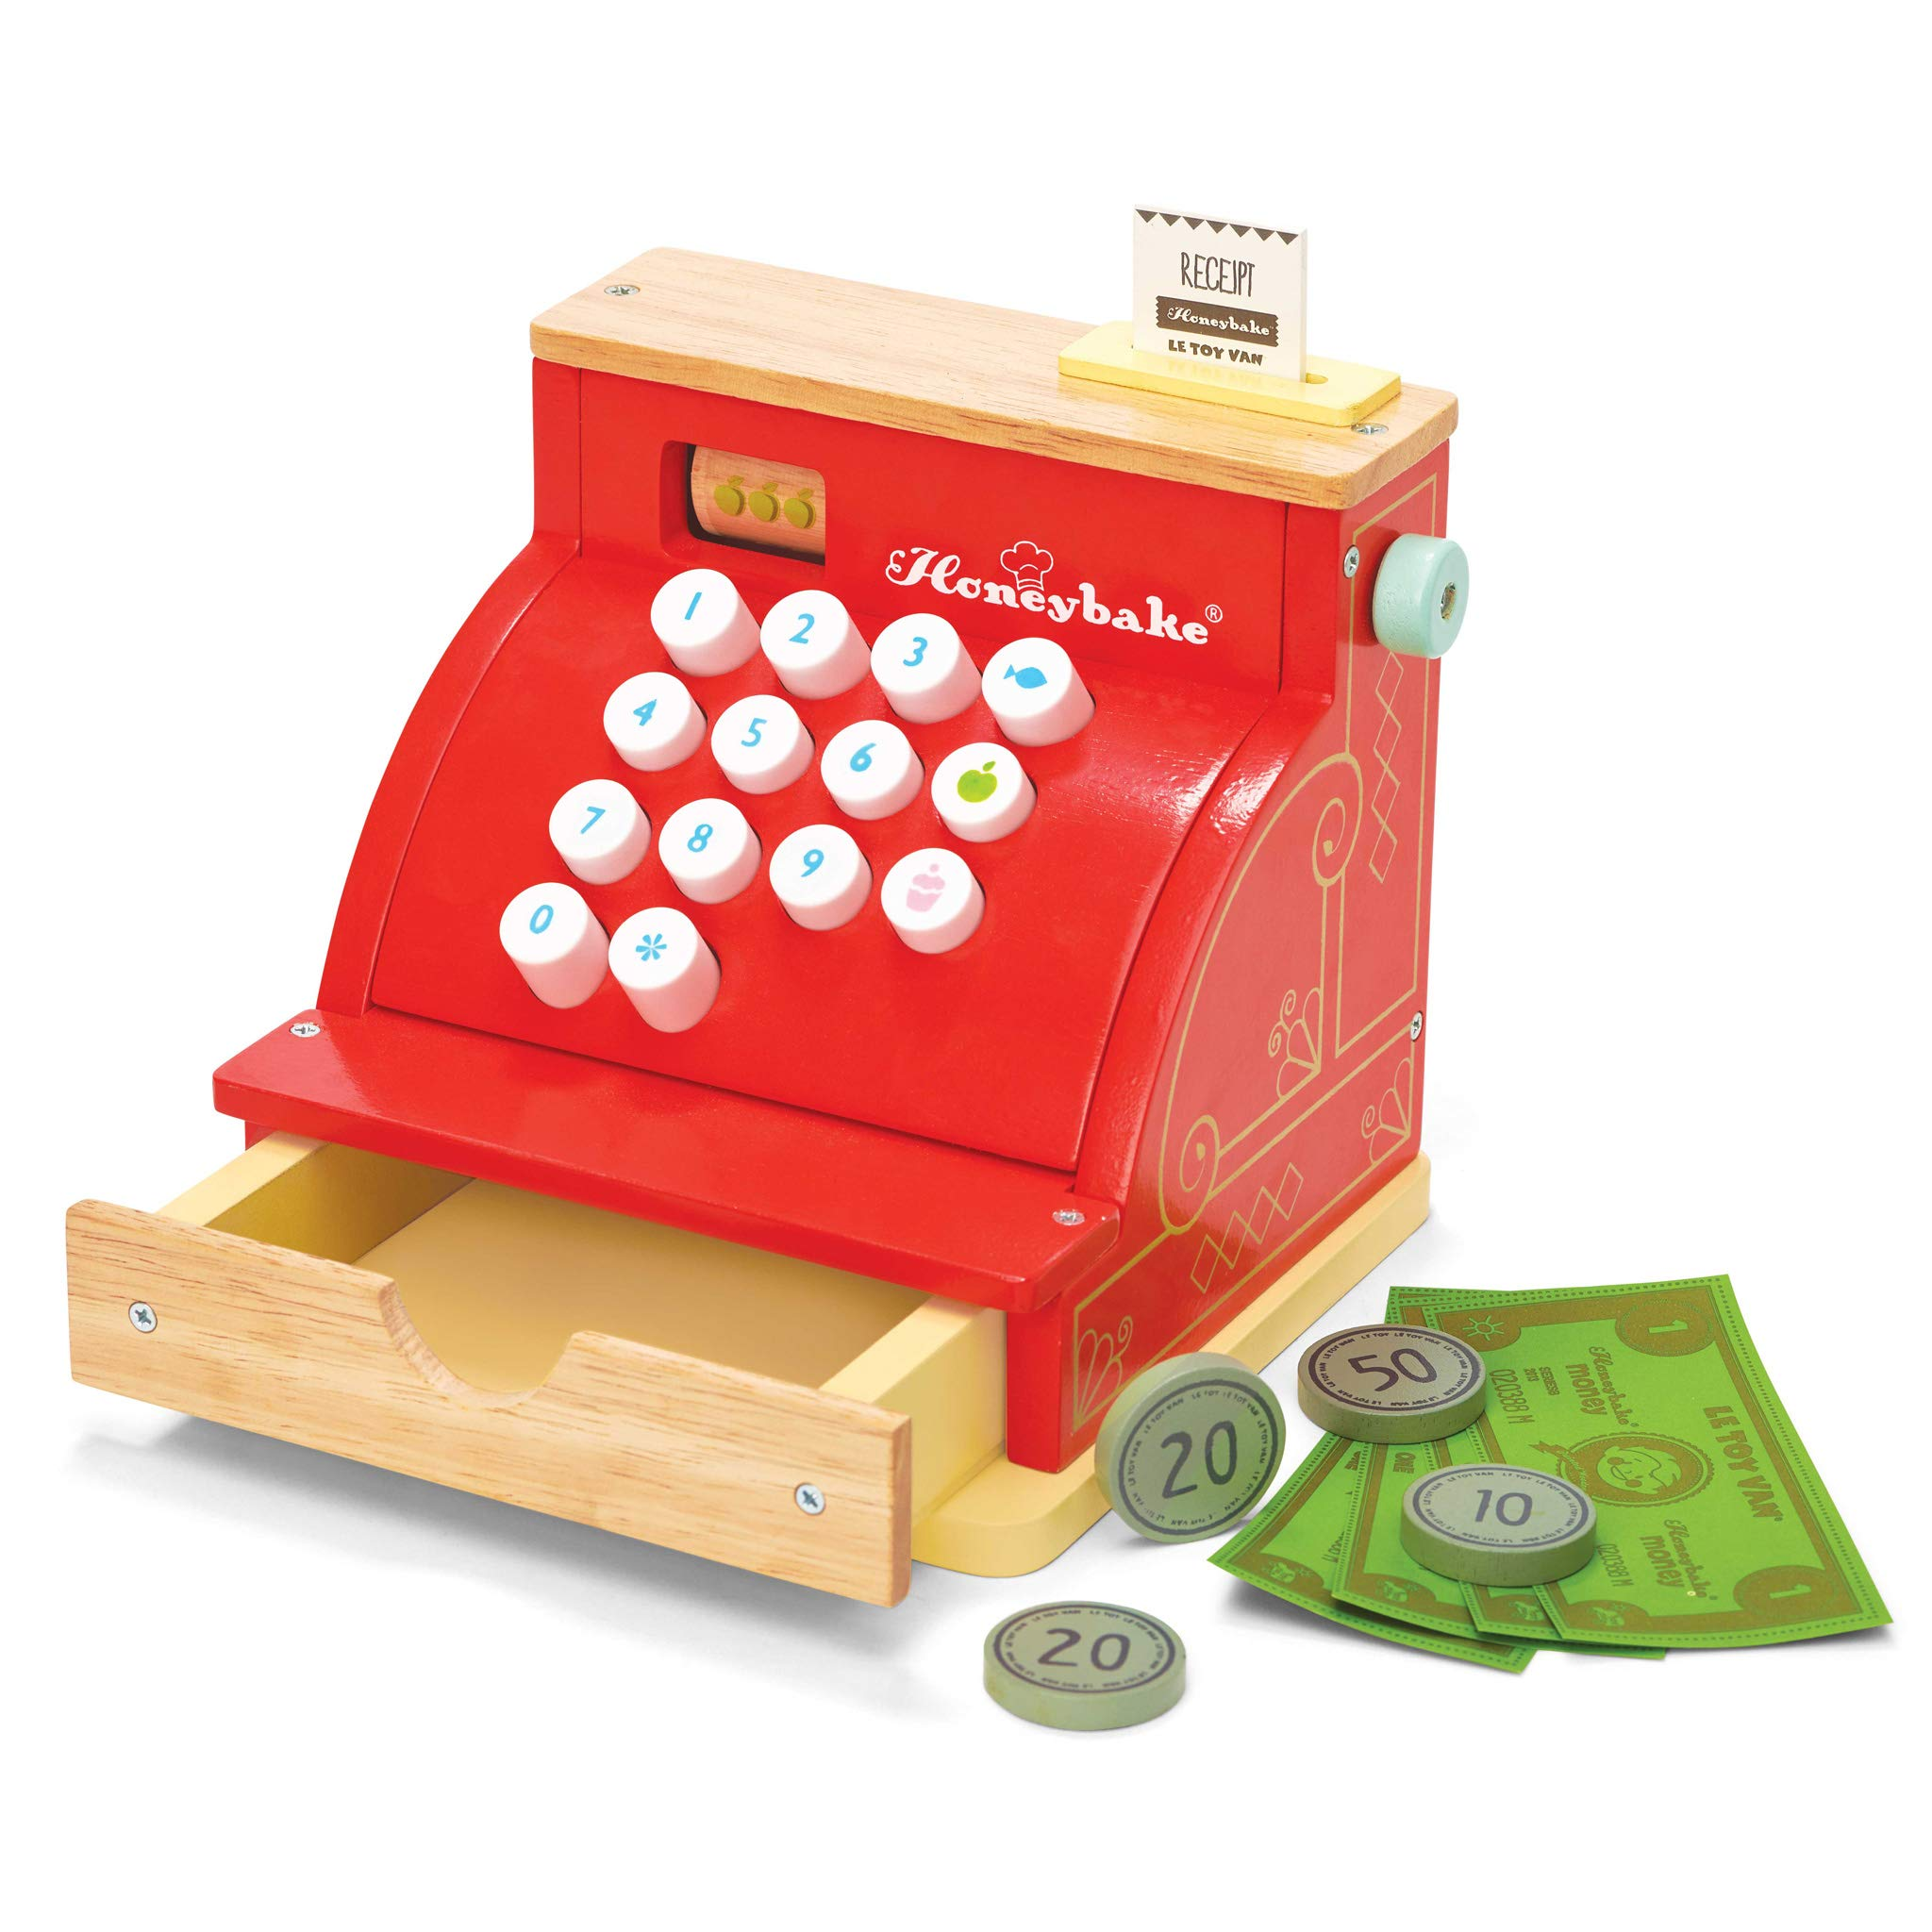 Le Toy Van Honeyback Collection Red Cash Register Premium Wooden Toys for Kids Ages 3 Years & Up by Le Toy Van